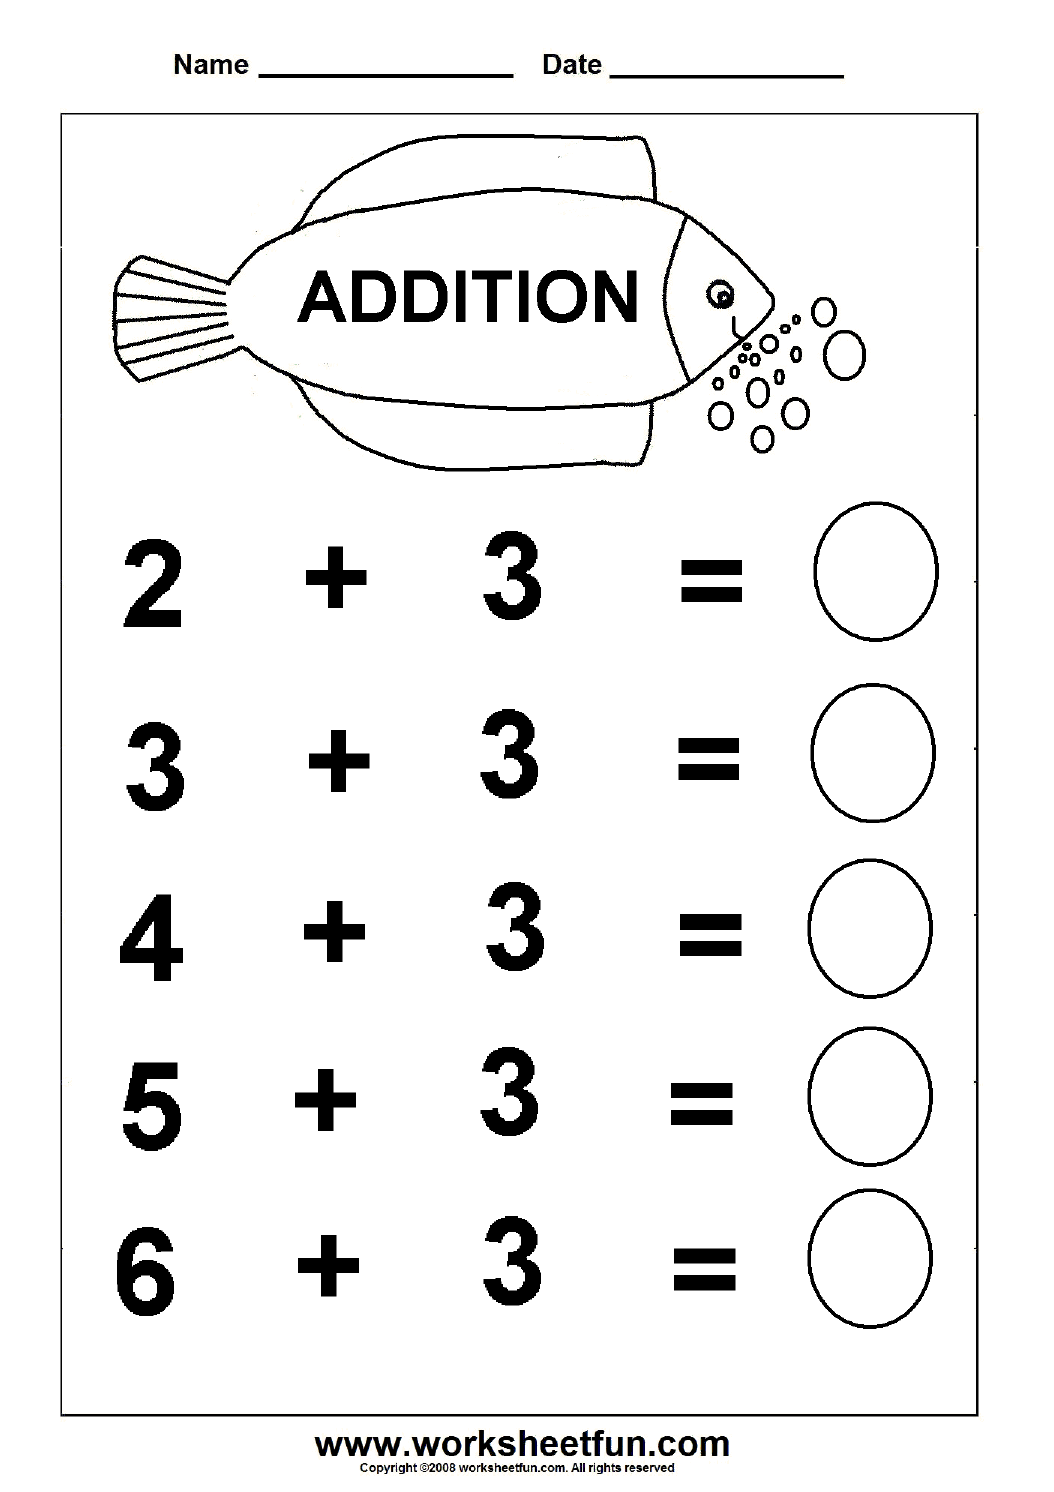 Printables Basic Addition Worksheets addition basic facts free printable worksheets beginner 6 kindergarten worksheets